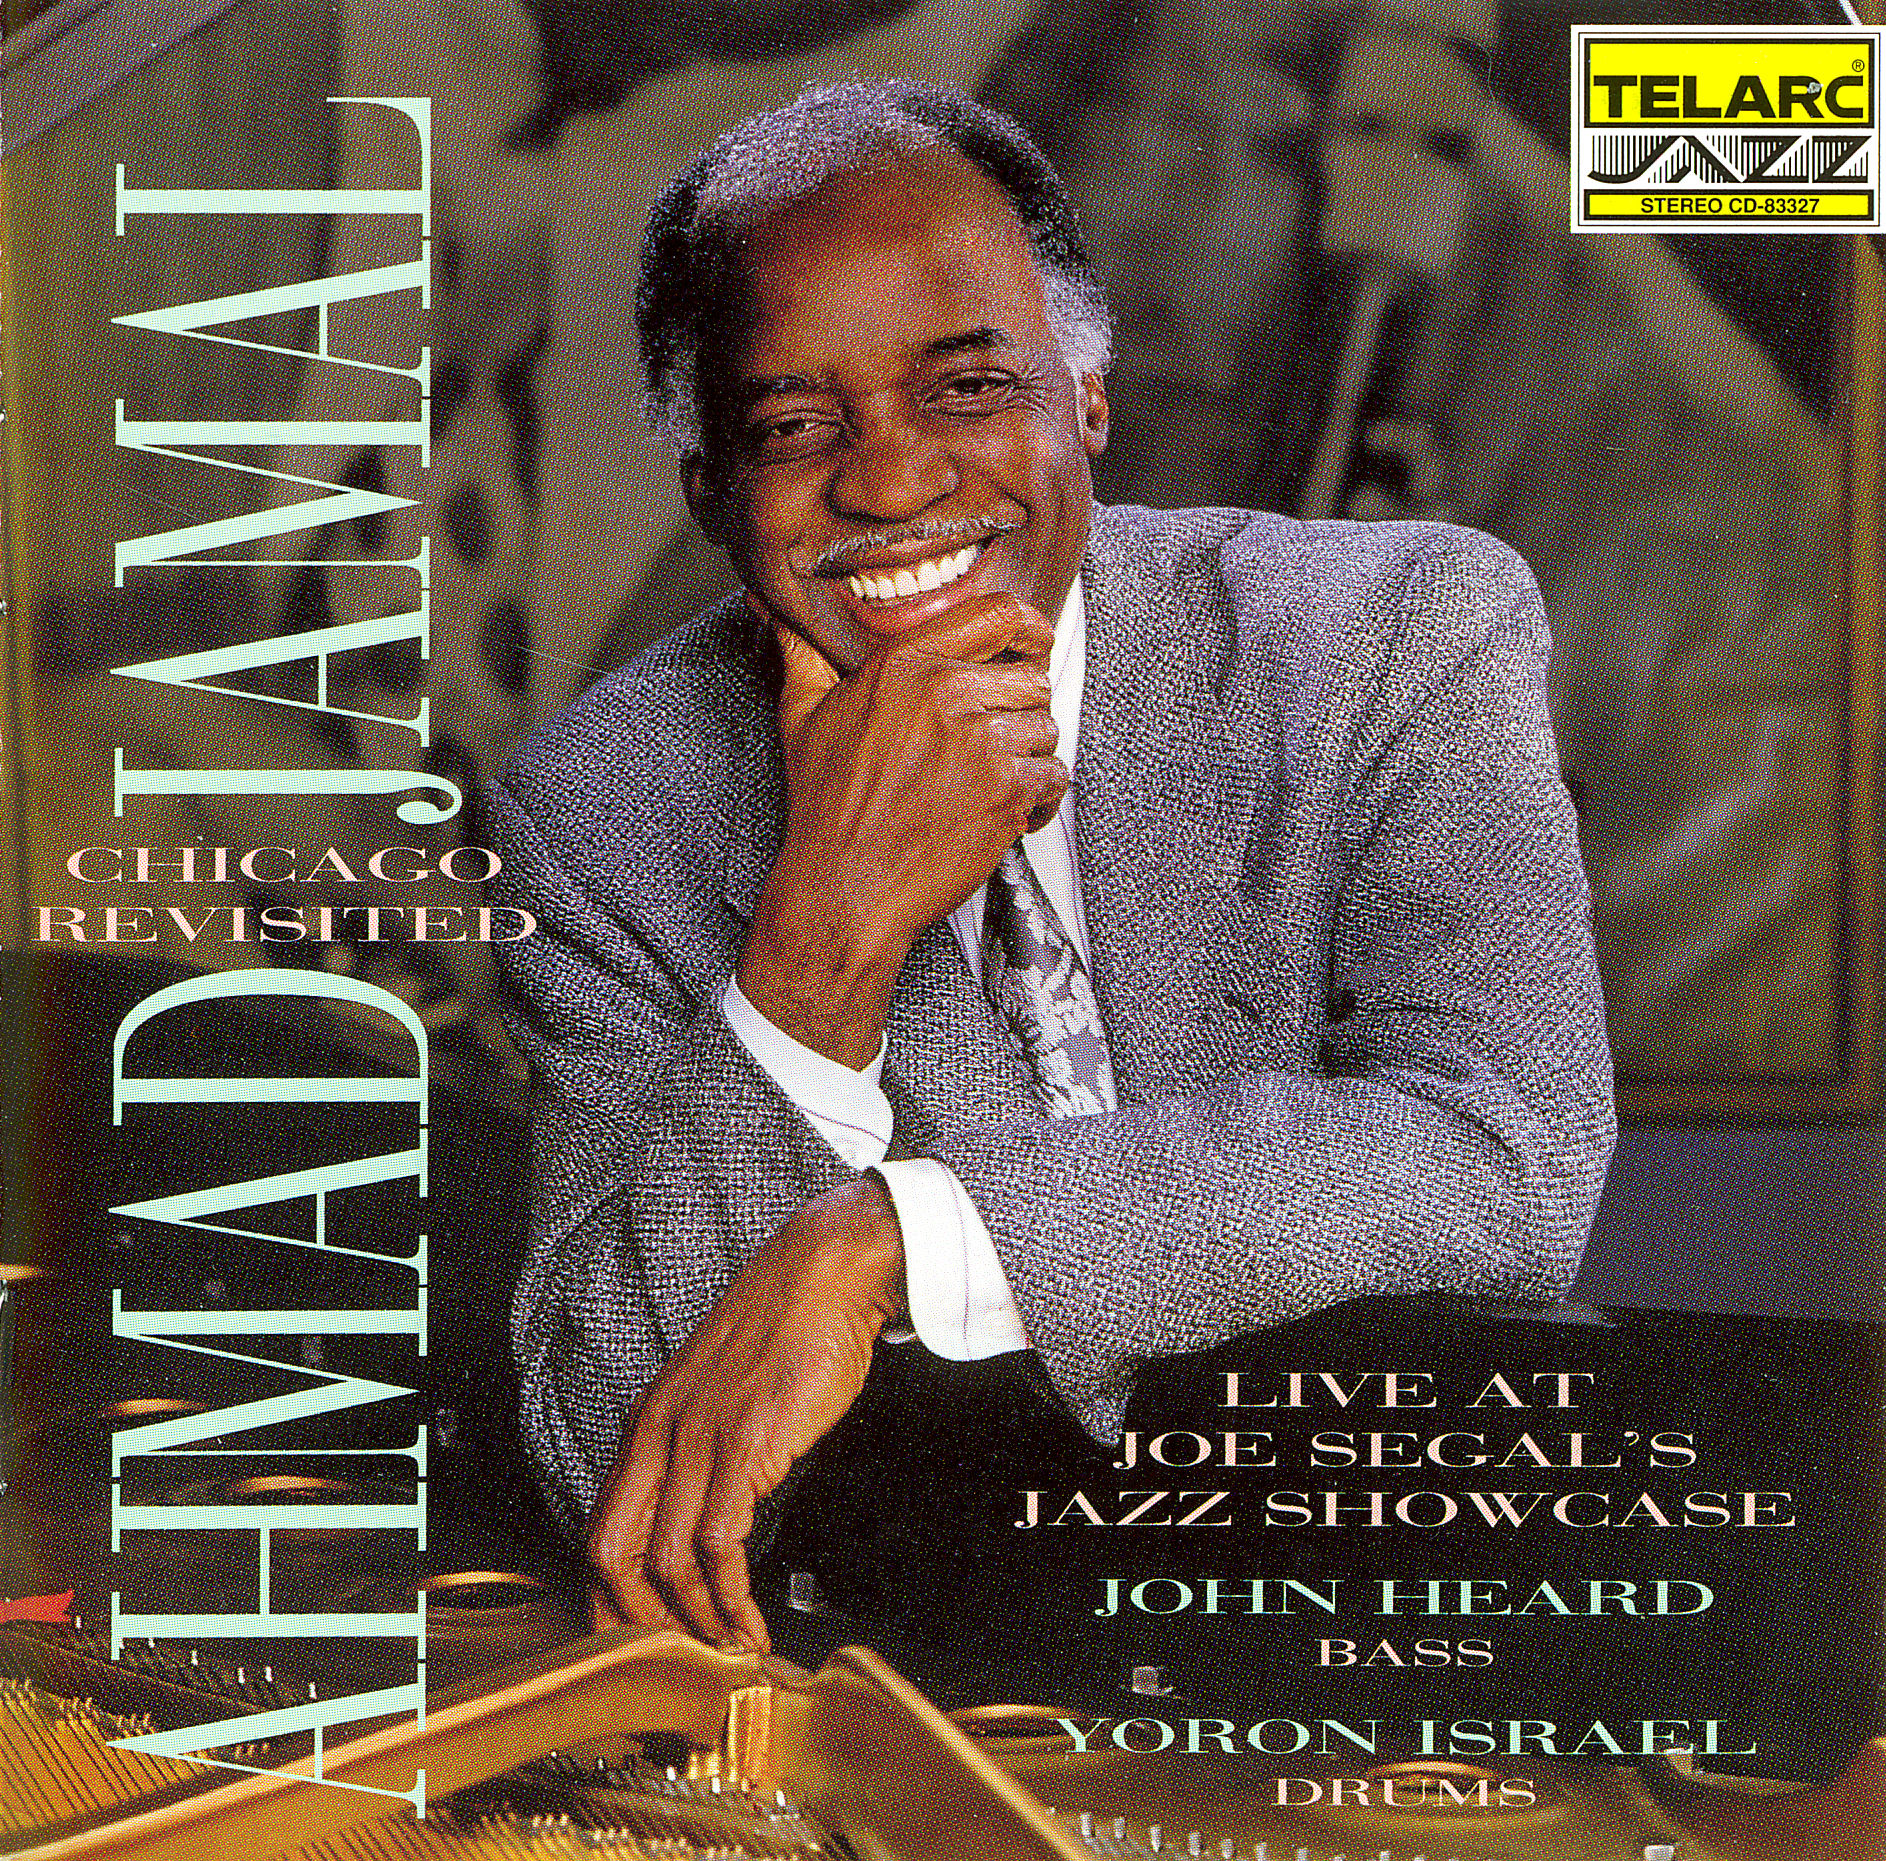 hight resolution of ahmad jamal chicago revisited live at joe segal s jazz showcase 1993